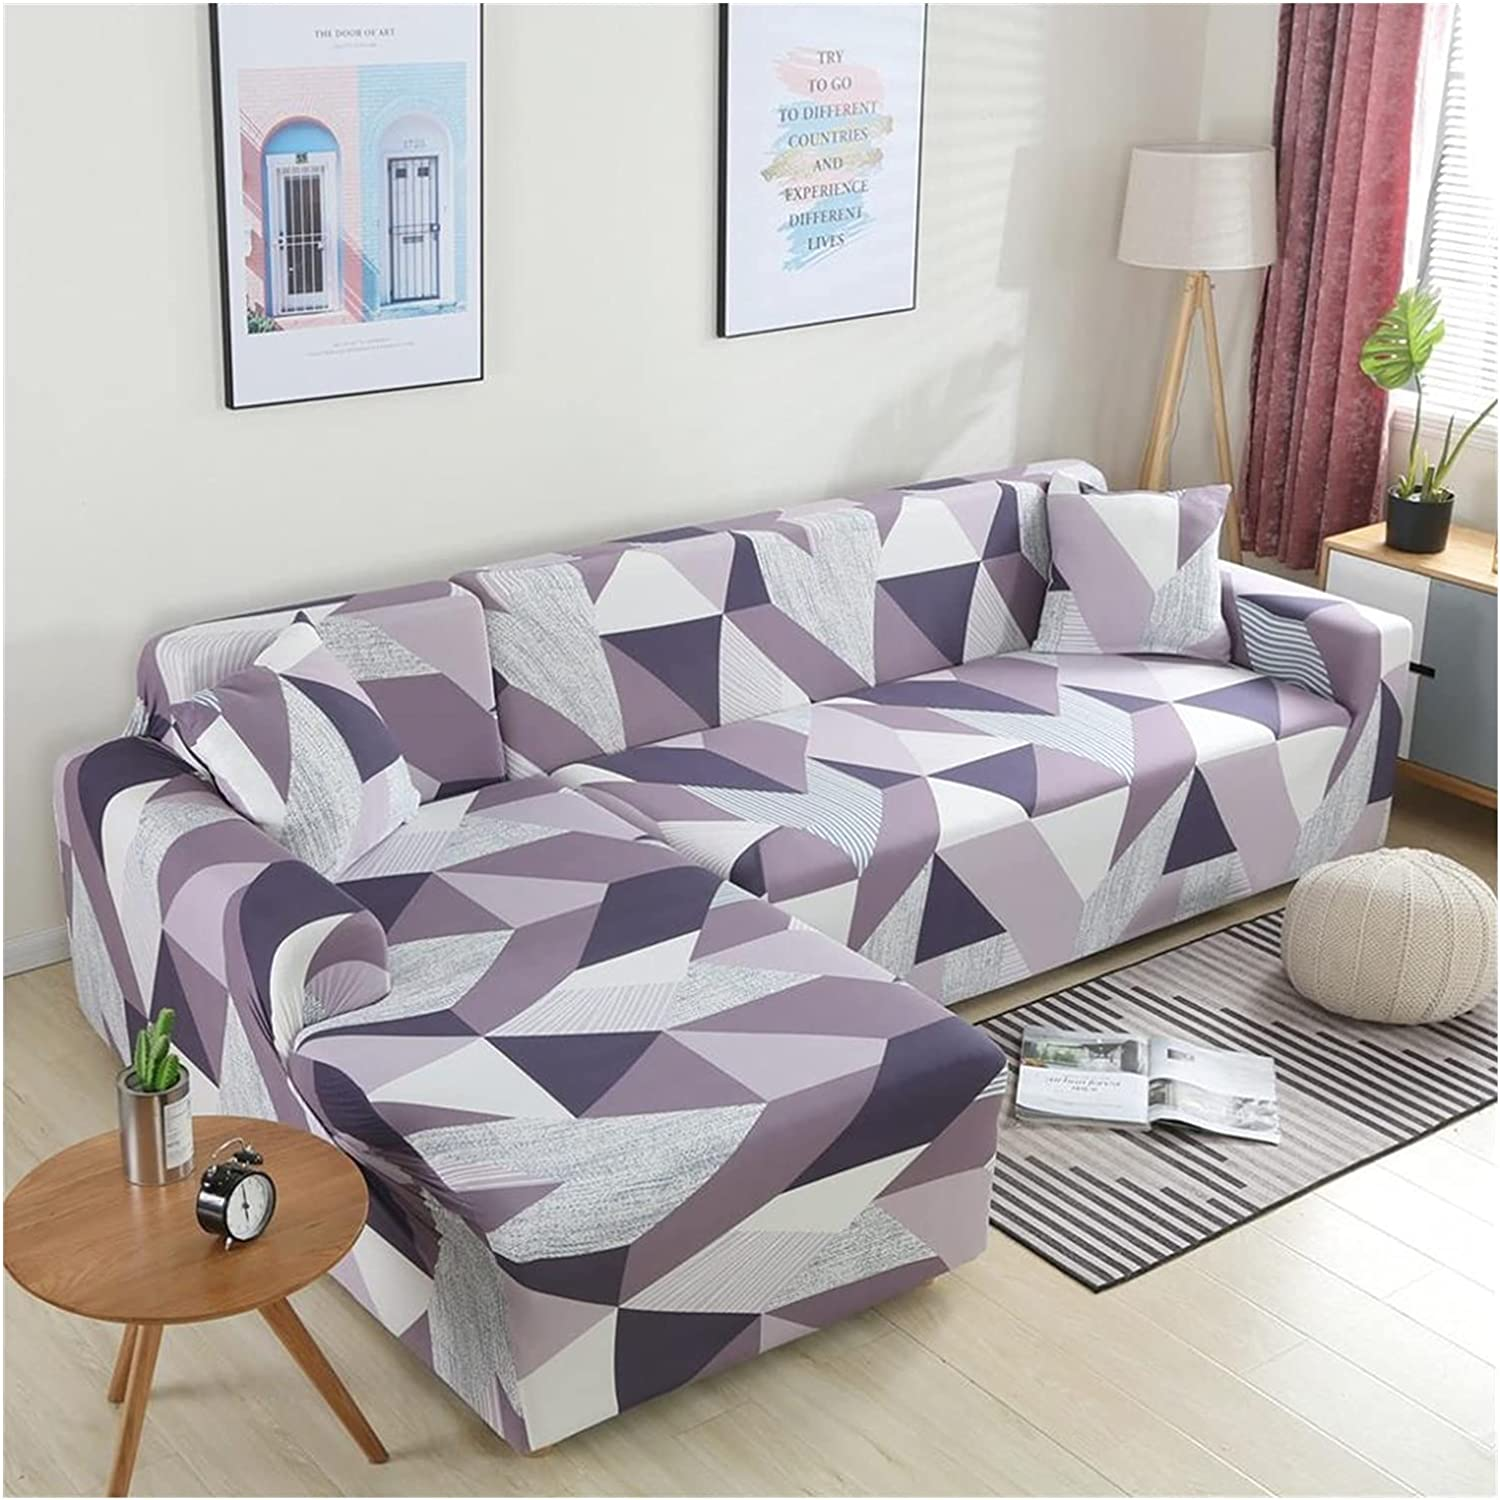 Store Sofa Arlington Mall Cover Elastic Sectional L-Shape Slipcover Corner Couch